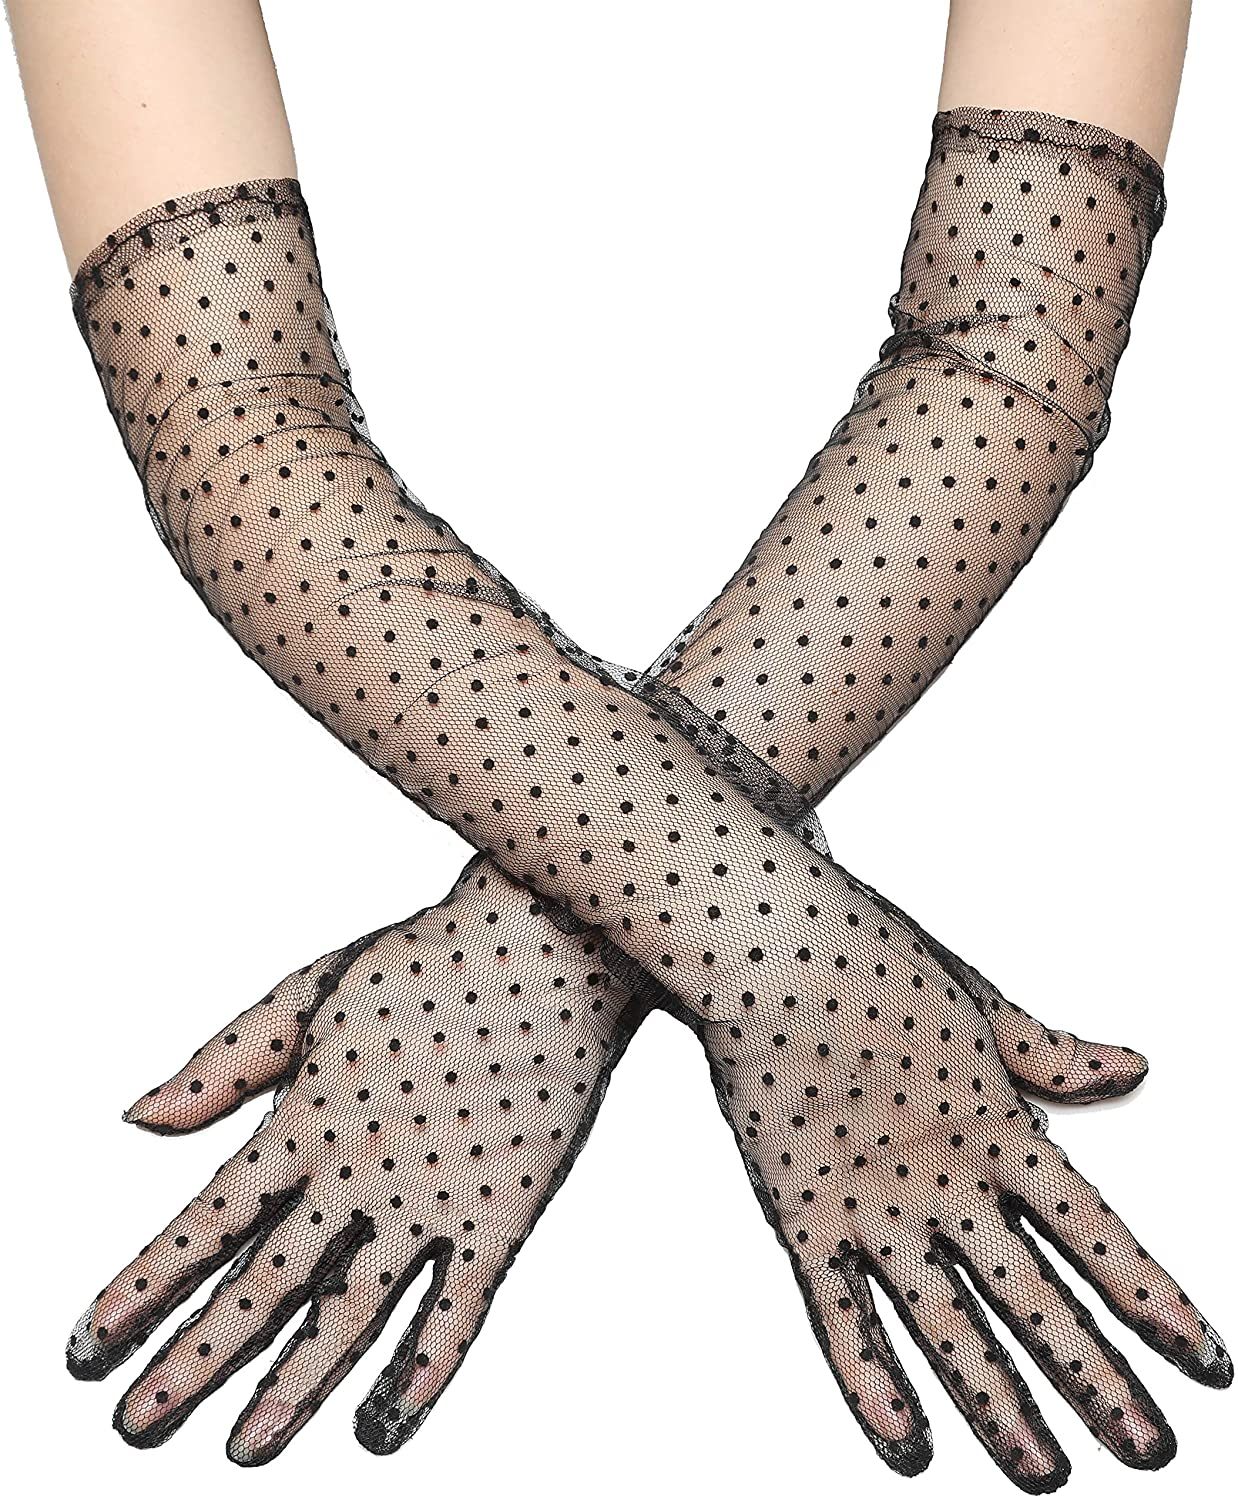 BABEYOND 1920s Long Tulle Dot Gloves Black Opera Gloves Prom Evening Gloves Wedding Special Occasion Gloves for Costume Party